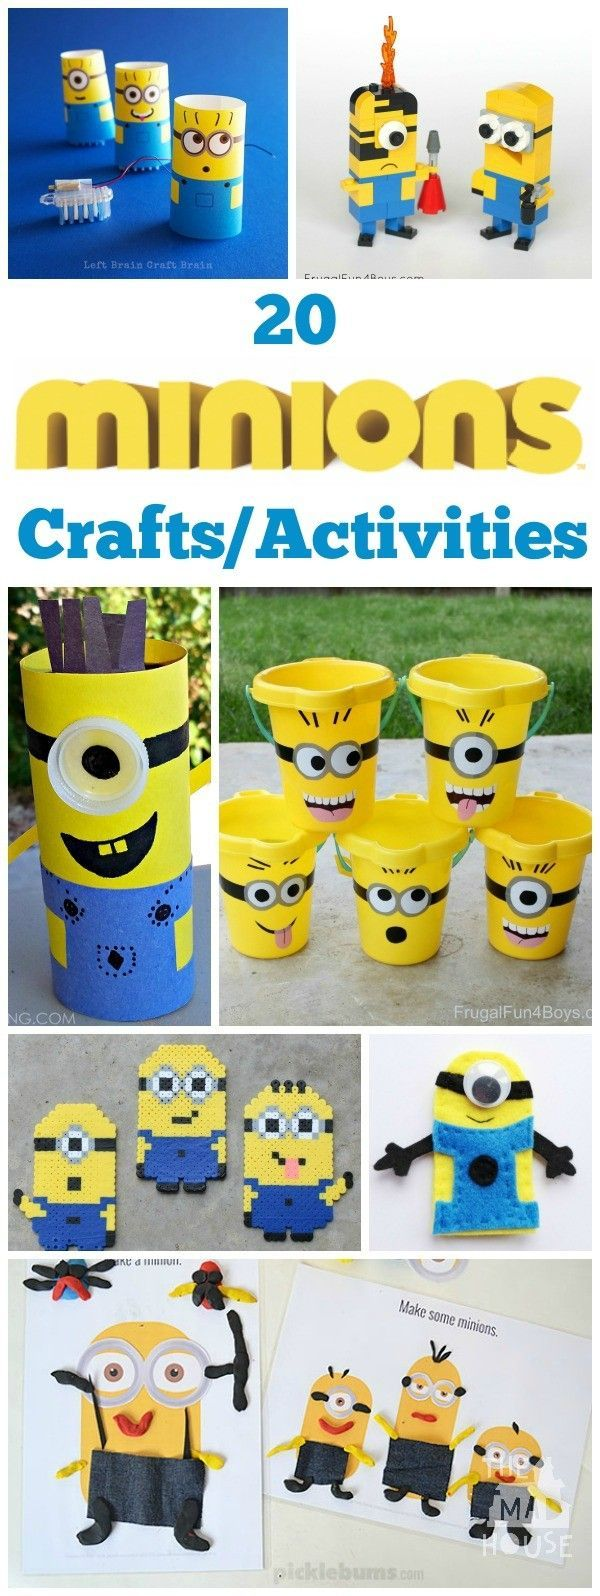 All things Minion.  20 Minion DIY crafts and activities for kids.  Celebrate all; things Minion with this fab Minion roundup.